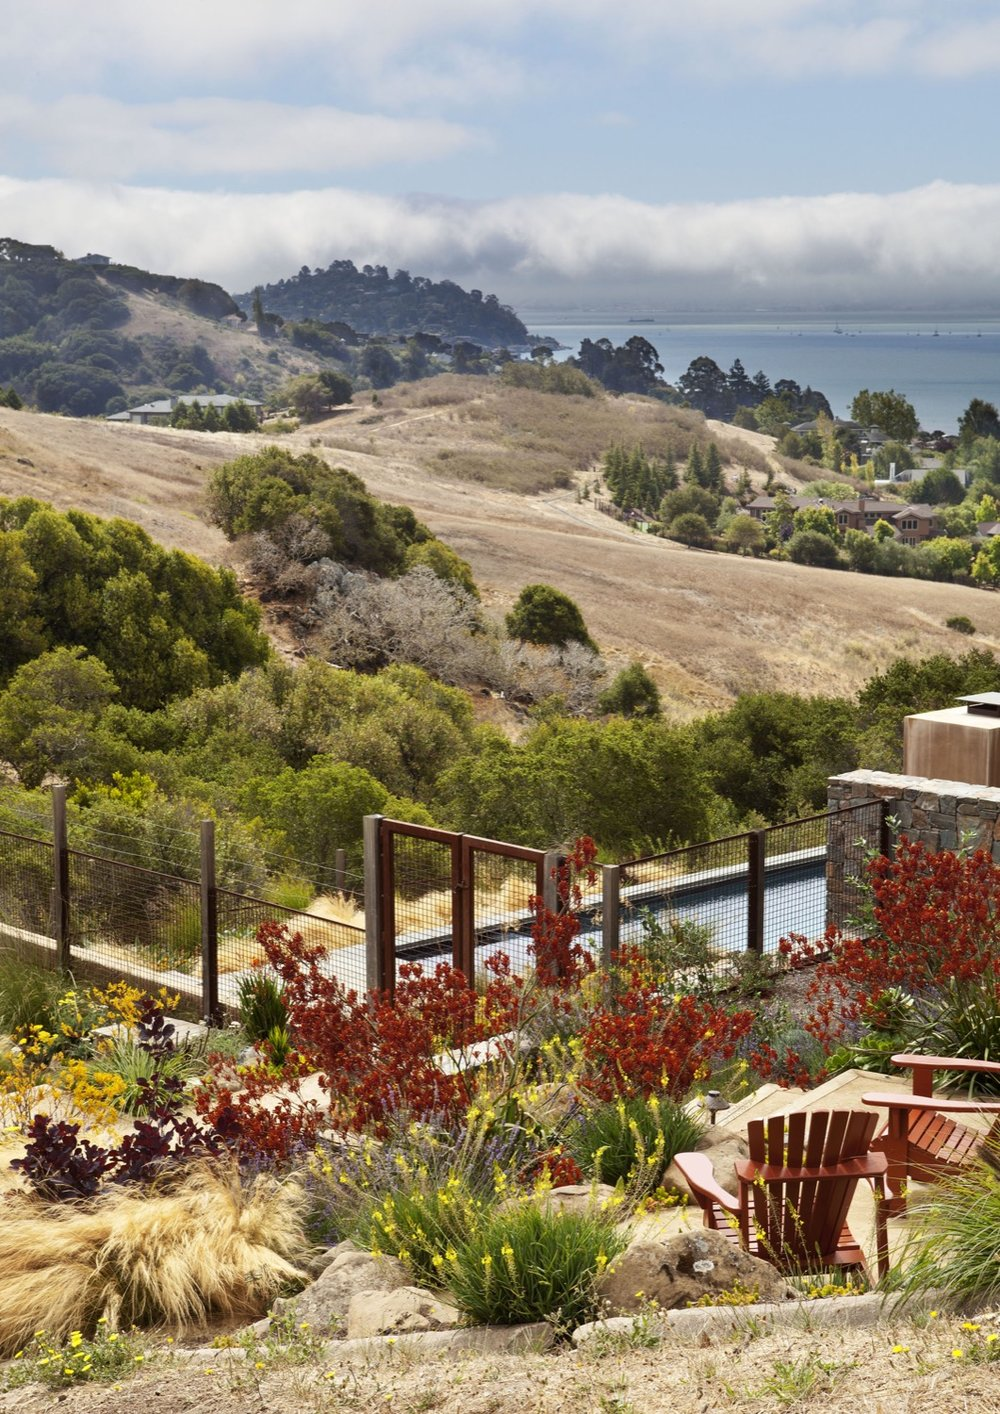 The seating area overlooks the San Francisco Bay.